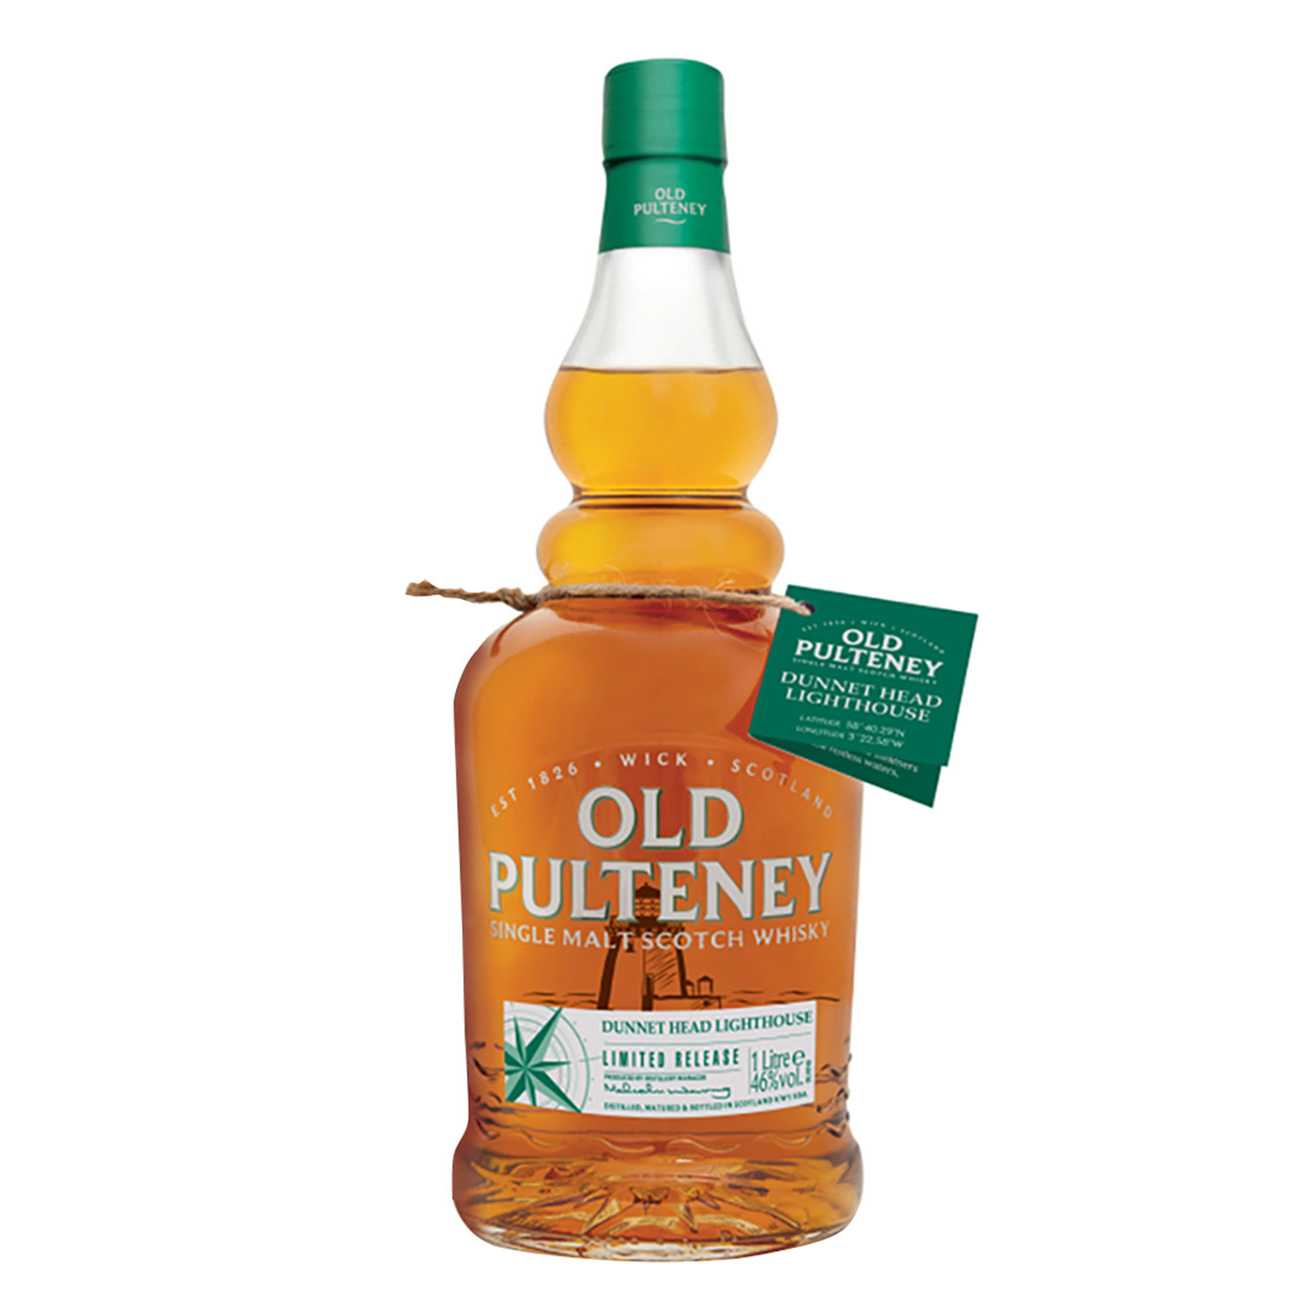 Whisky scotian, DUNNET HEAD LIGHTHOUSE 1000 ML, Old Pulteney